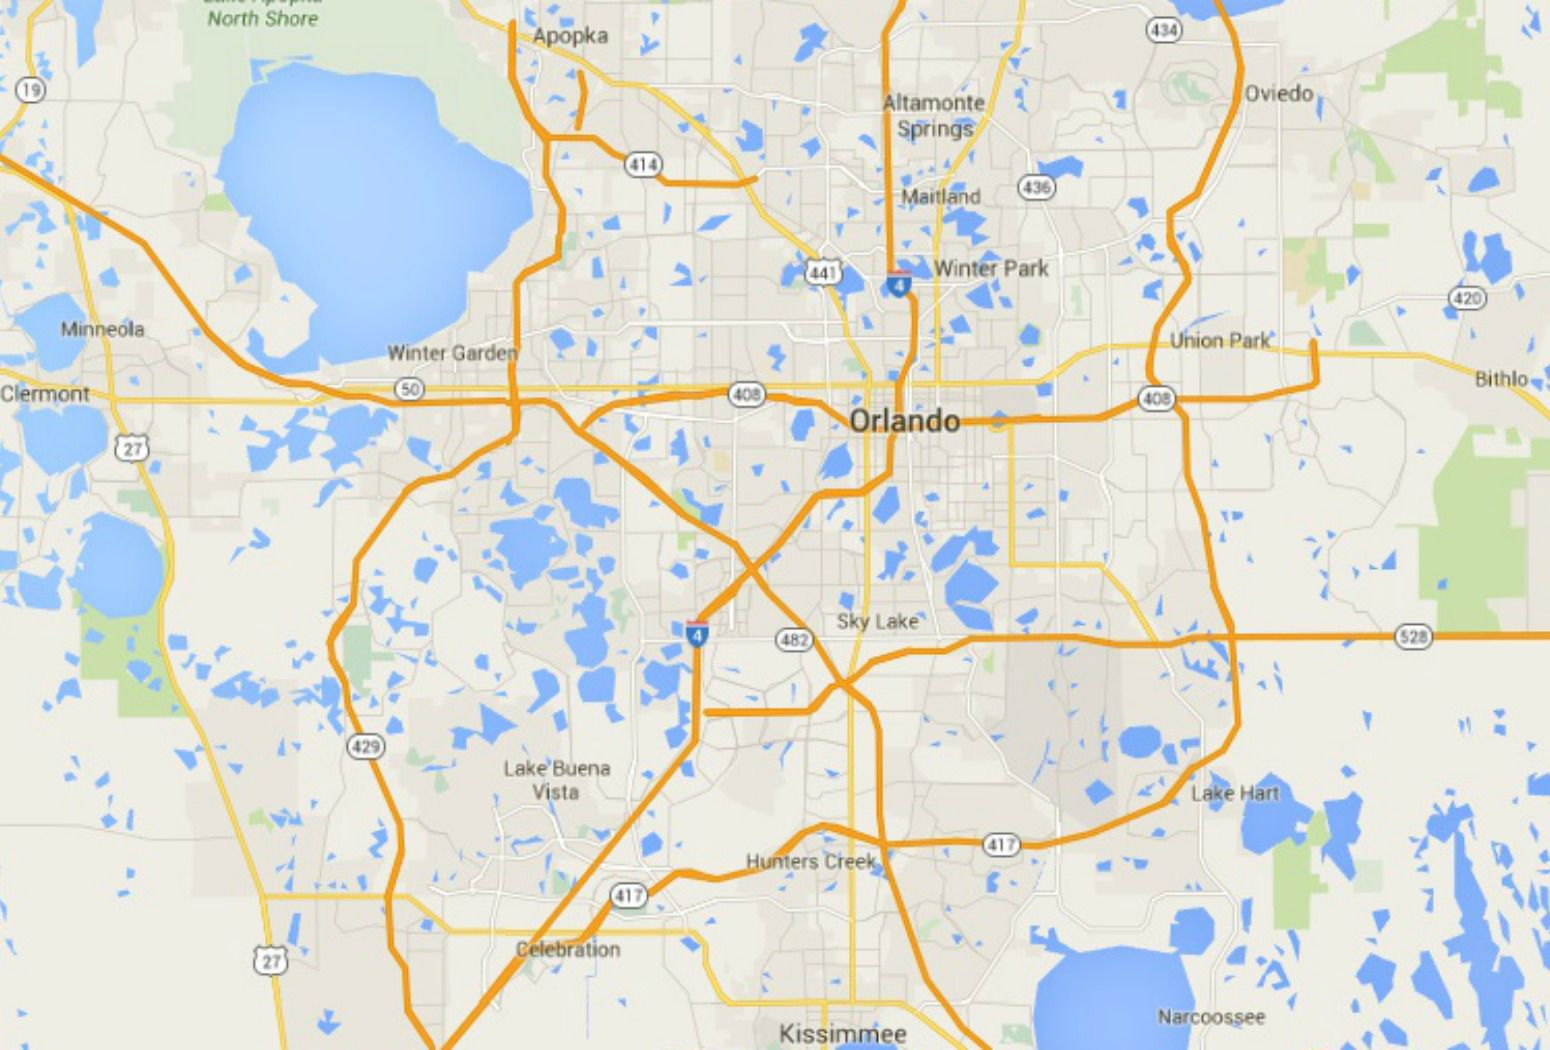 Map Of The Panhandle Of Florida.Maps Of Florida Orlando Tampa Miami Keys And More